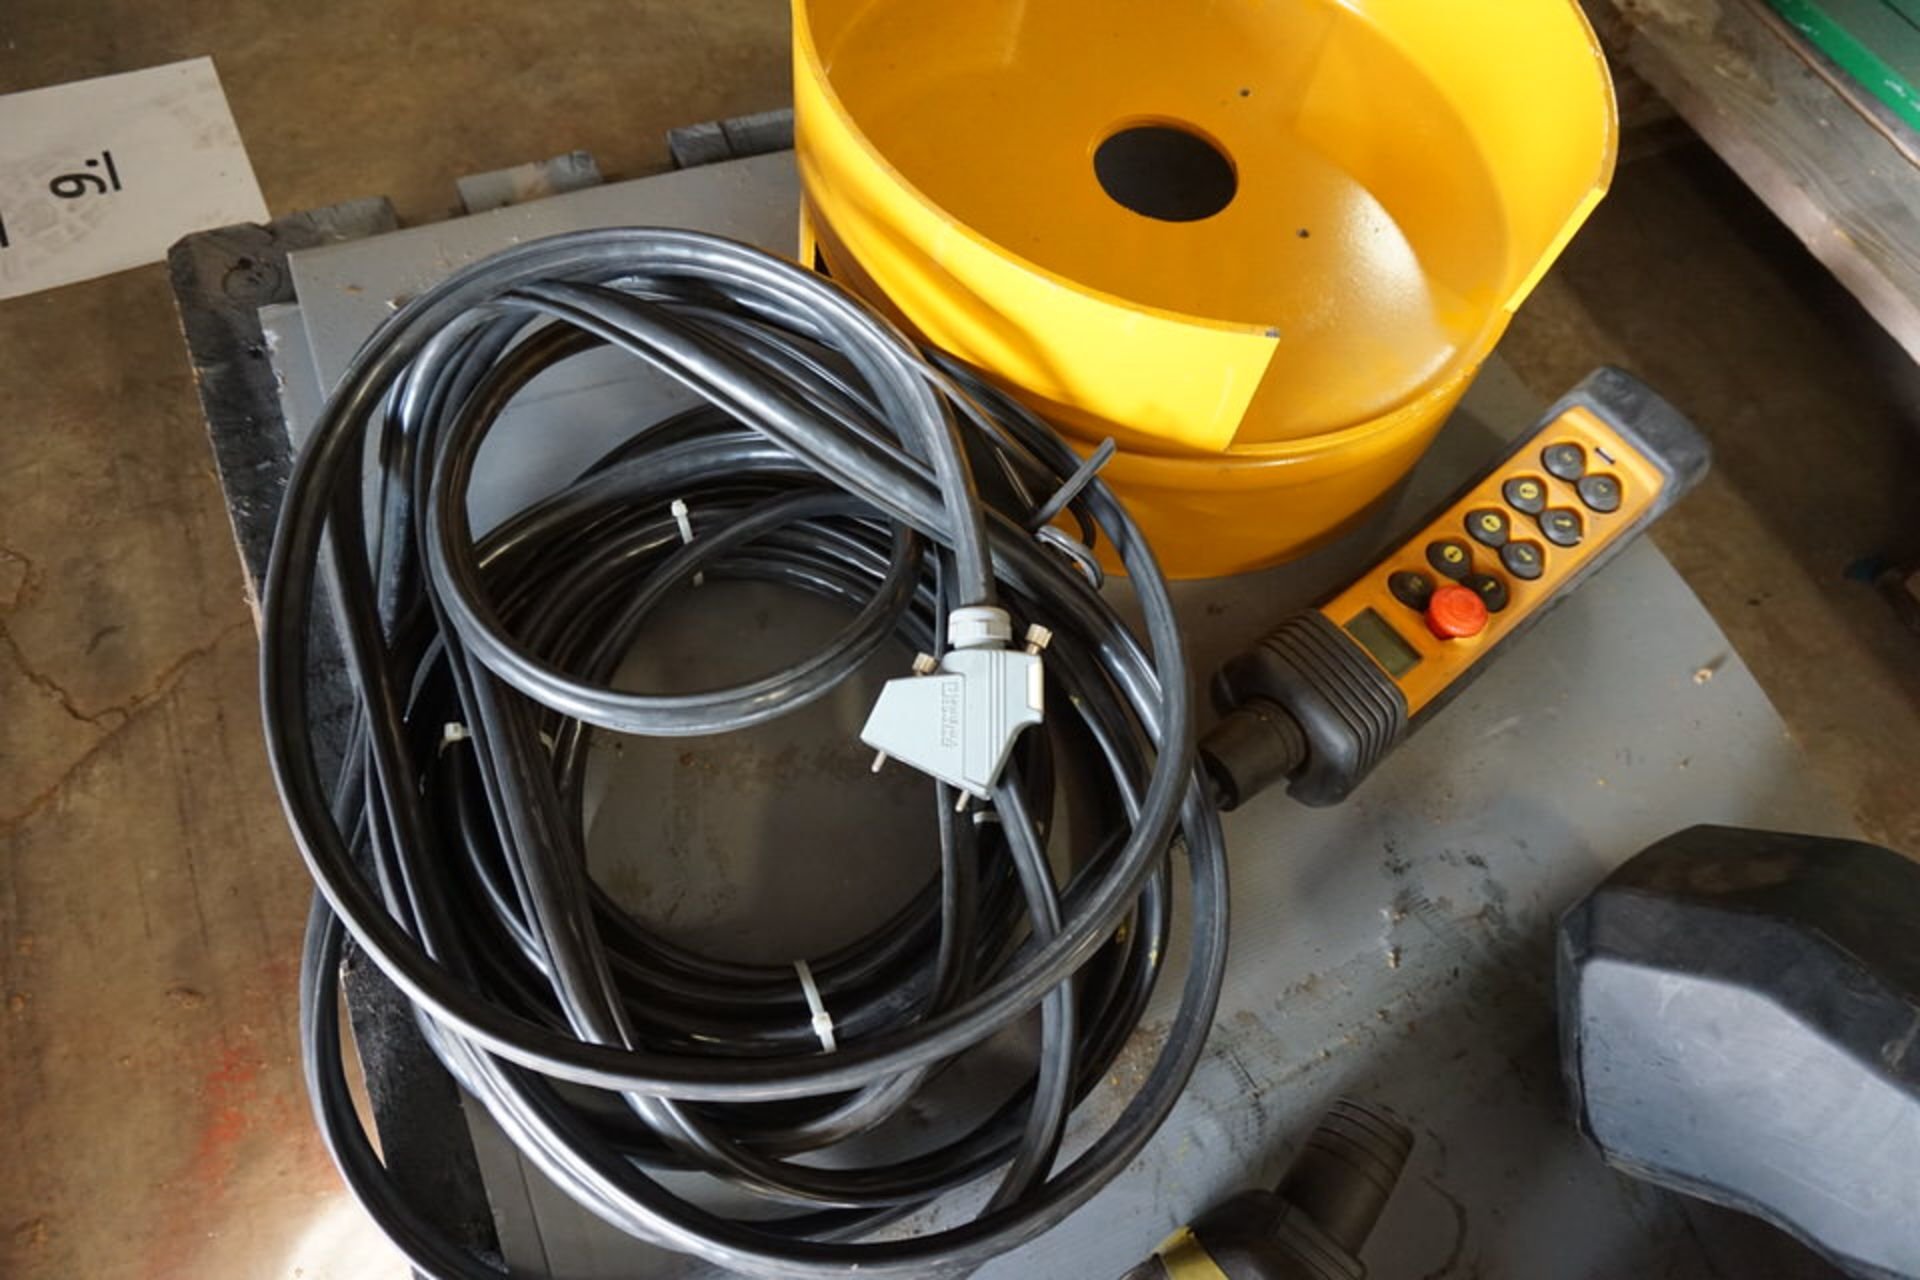 Lot 18 - PMH CHAIN HOIST, TYPE:CH1-250. 8-1 W/ PENDANT CTRL (Location: 903 Blue Starr, Claremore, OK 74017)